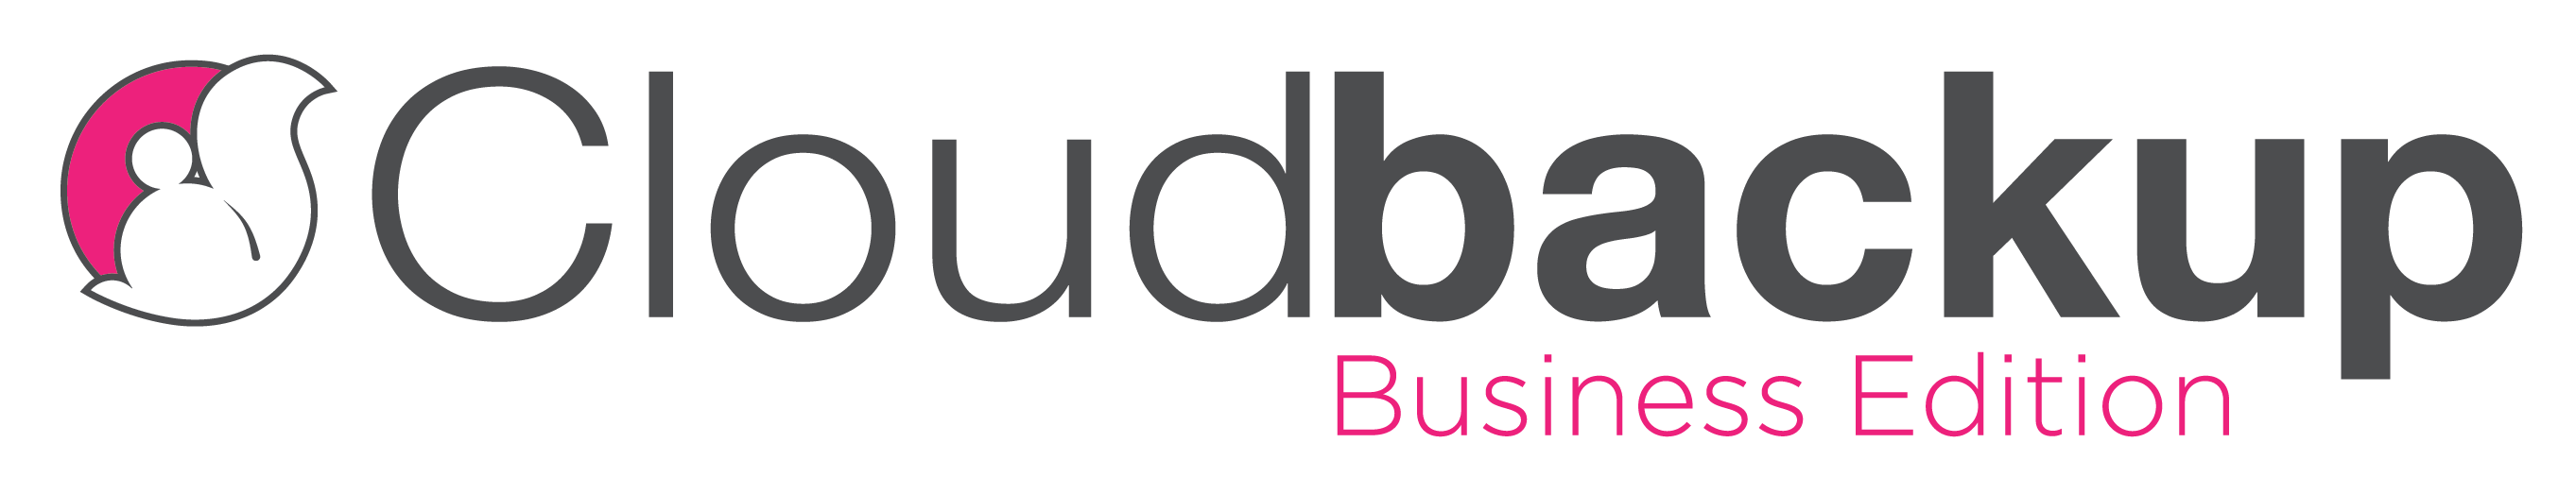 Cloudbackup Business Edition Logo-01